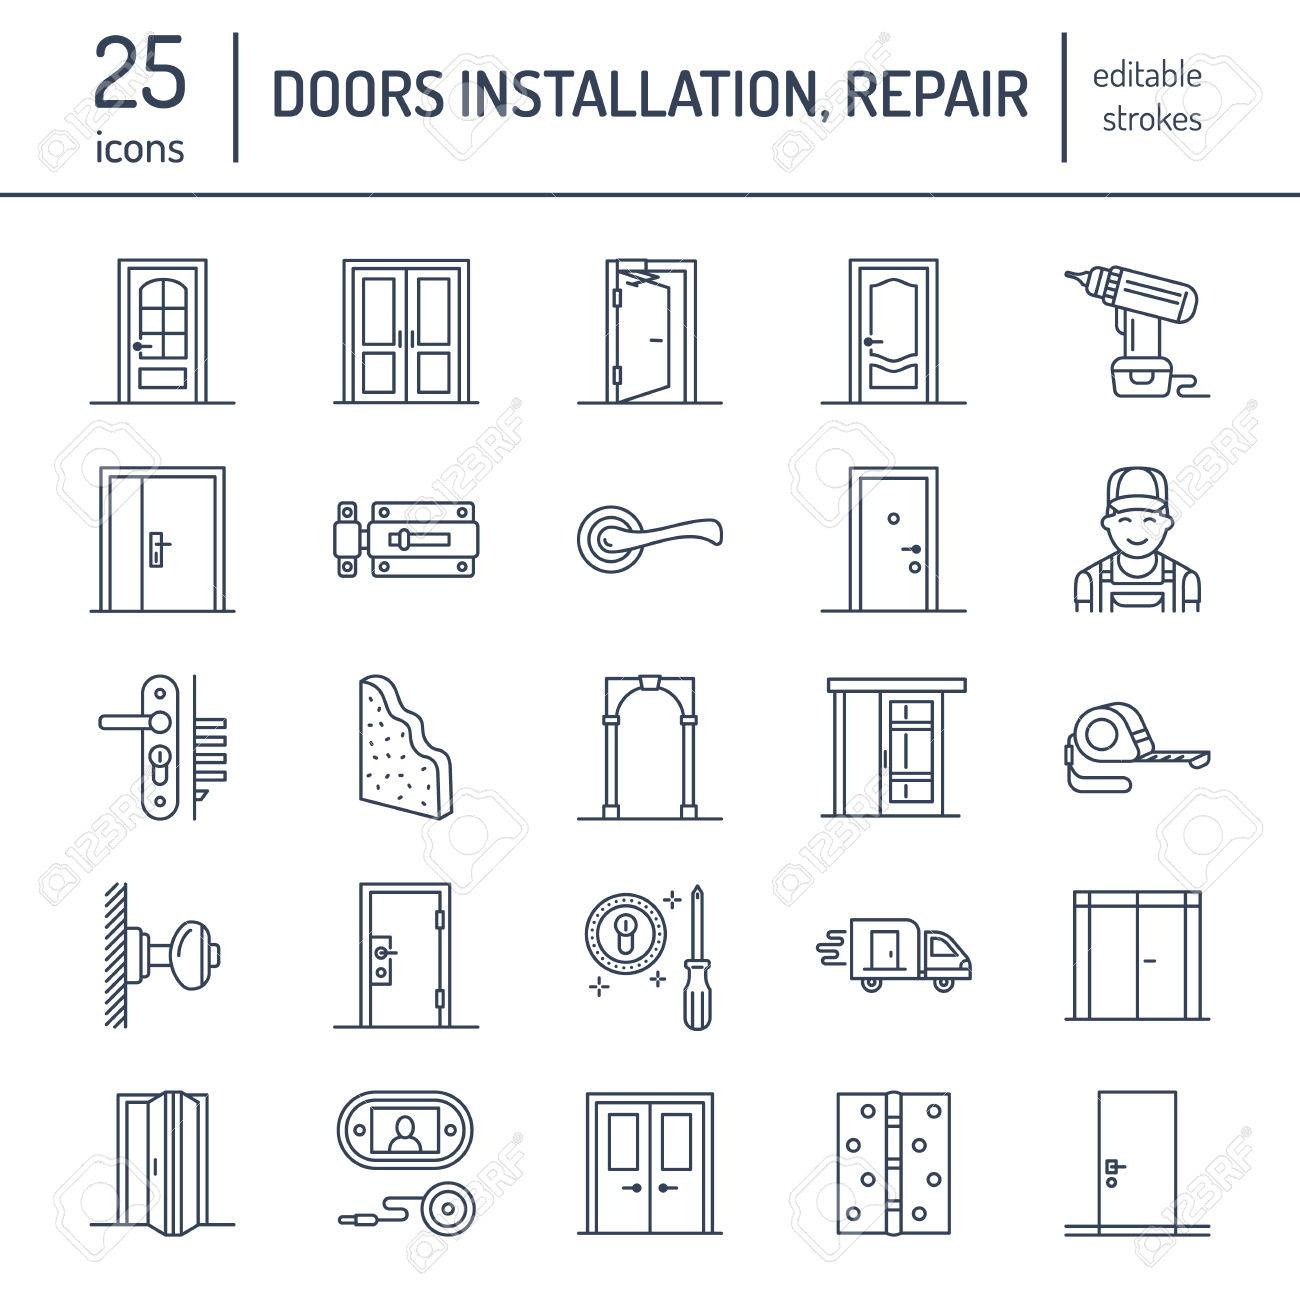 Doors installation, repair line icons. Various door types, handle, latch, lock, hinges. Interior design thin linear signs for house decor shop, handyman service. - 80570641